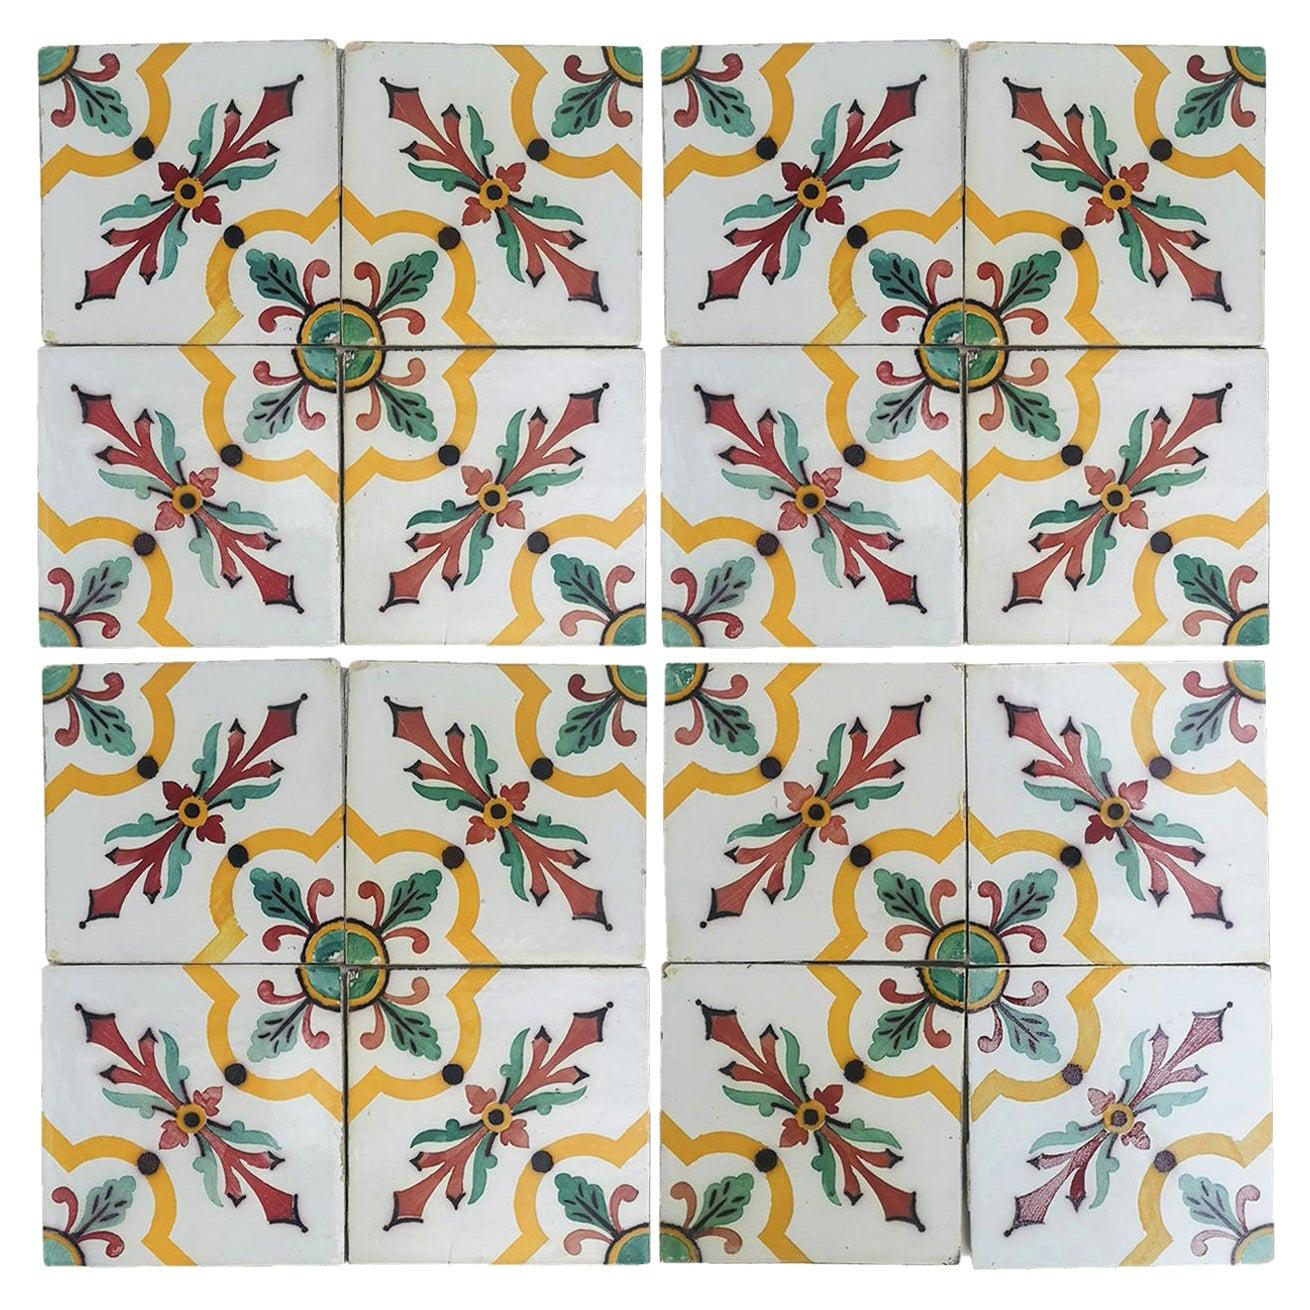 1 of the 350 Handmade Antique Ceramic Tiles by Devres, France, 1920s